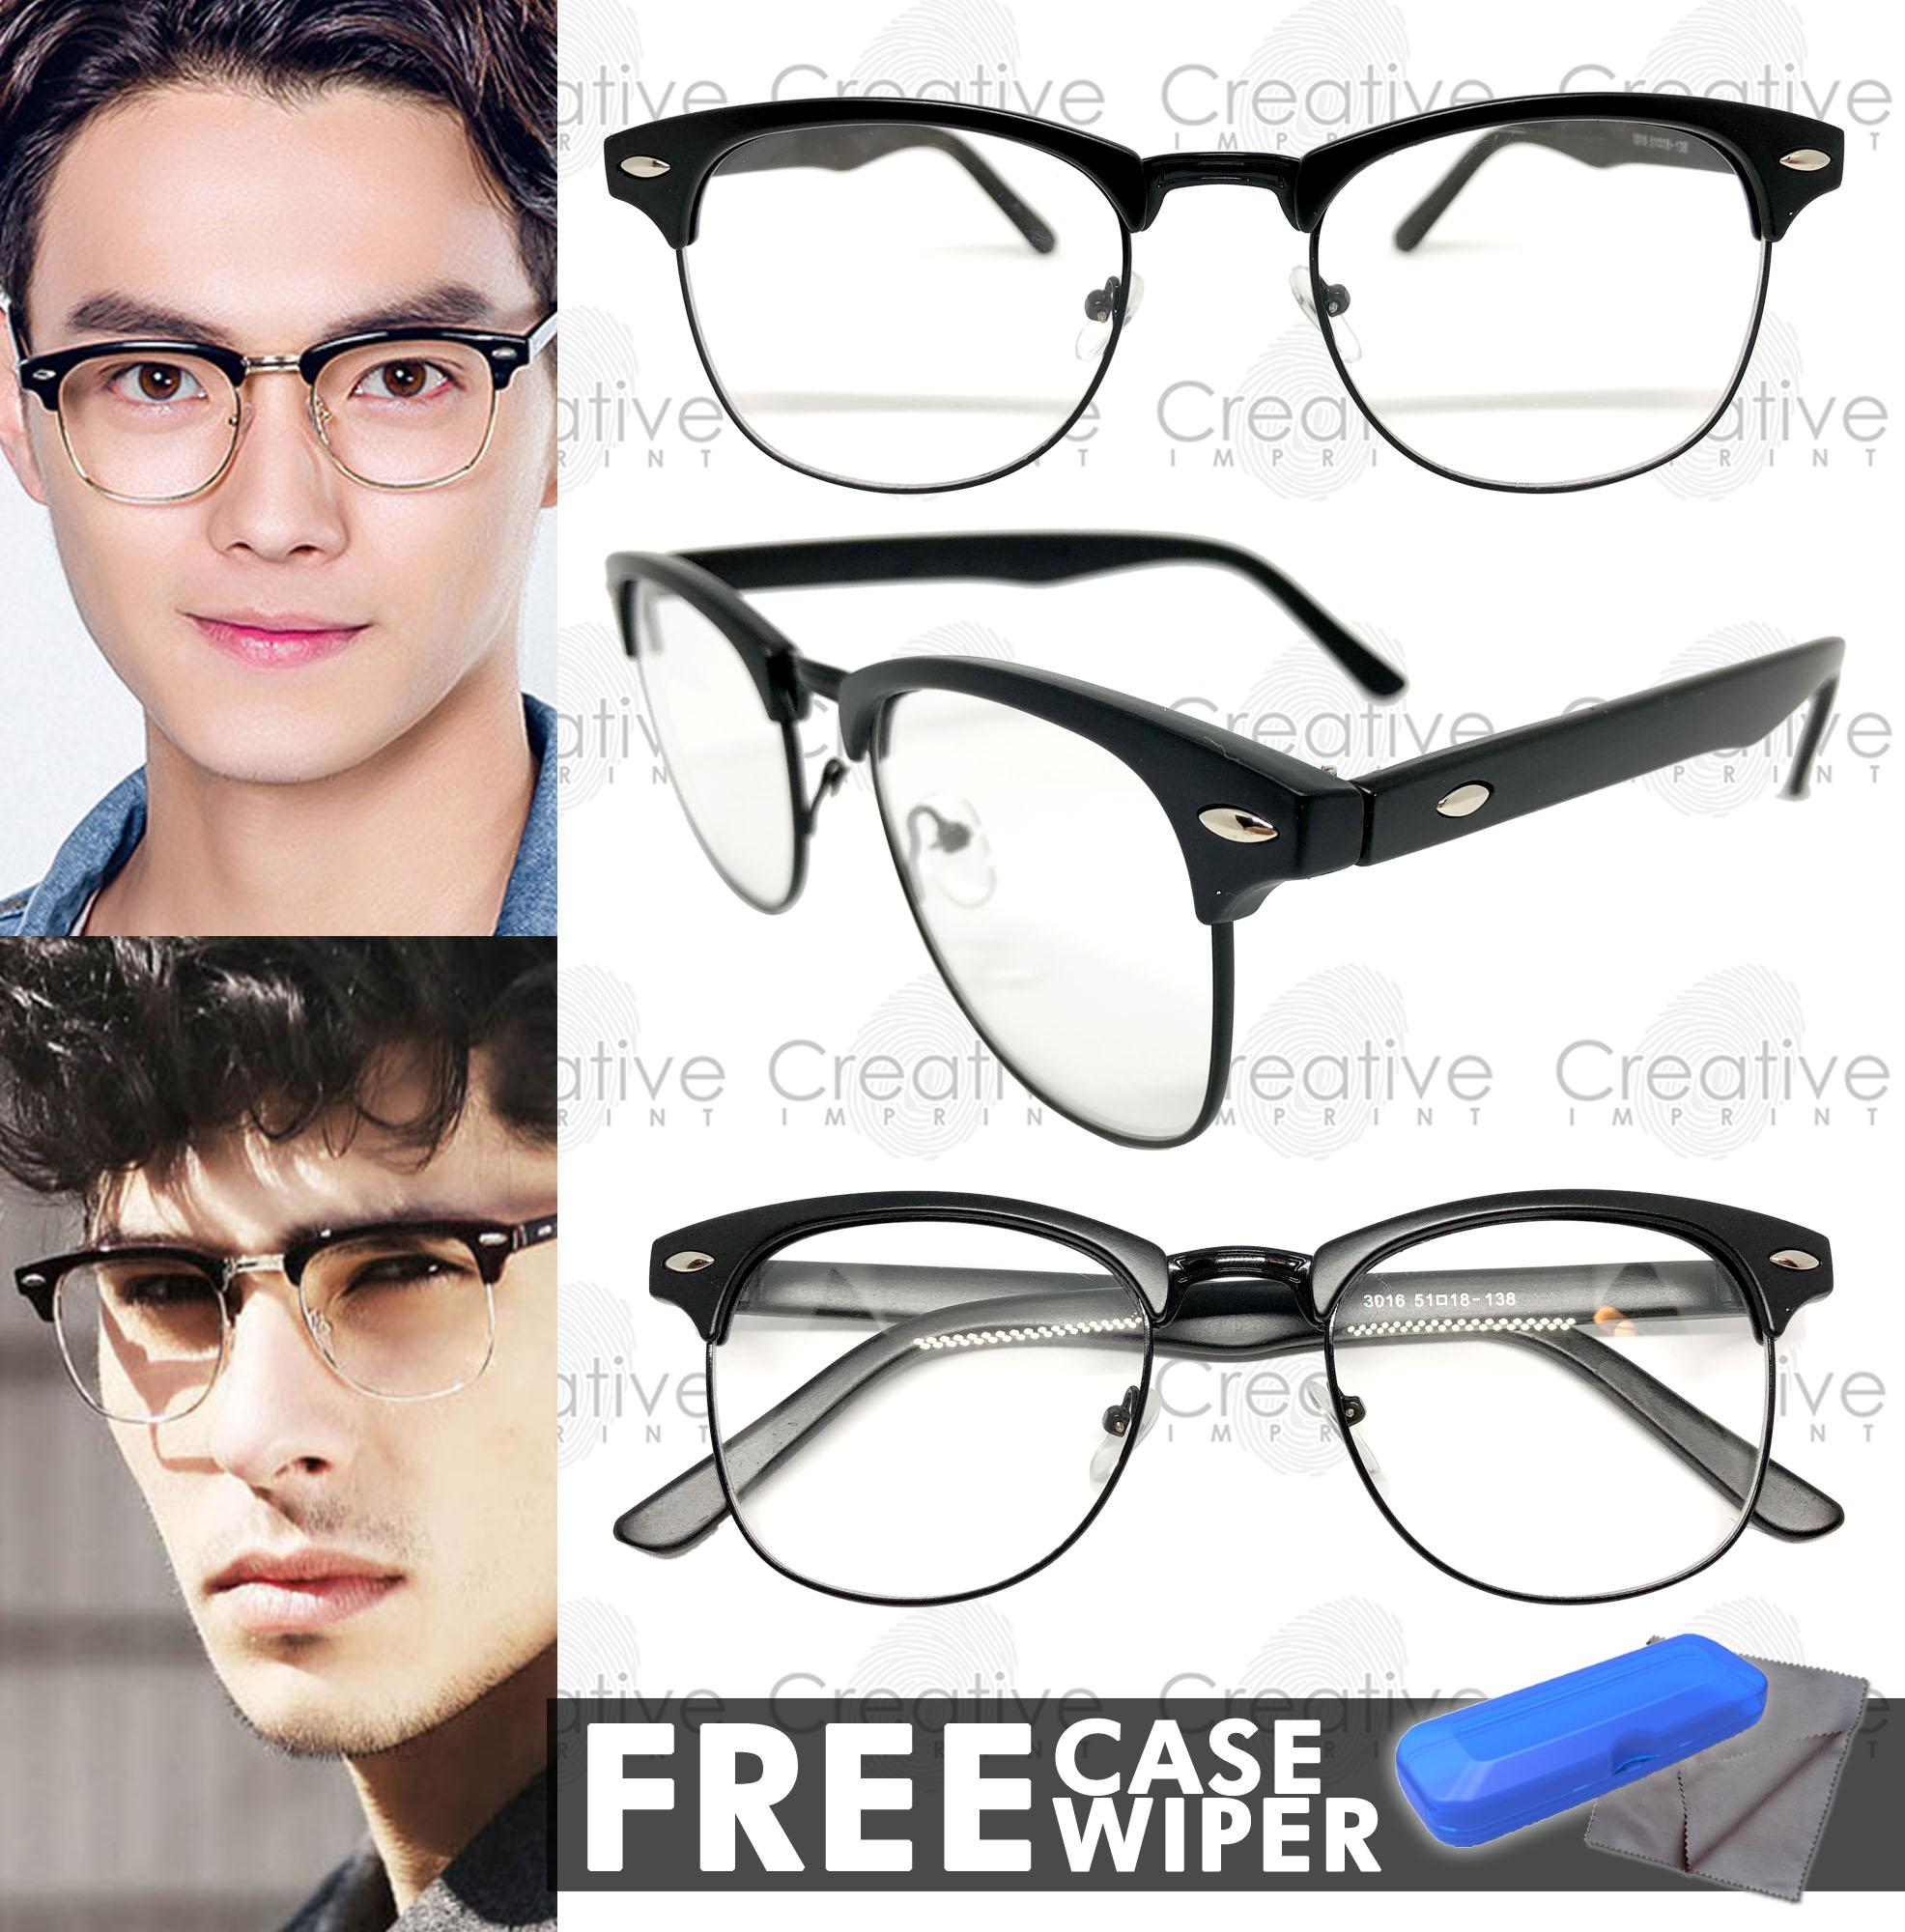 353b600309 Creative Imprint Eyeglasses Replaceable Lens Clubmaster  01 Premium High  Quality Specs Metal Korean Style Computer